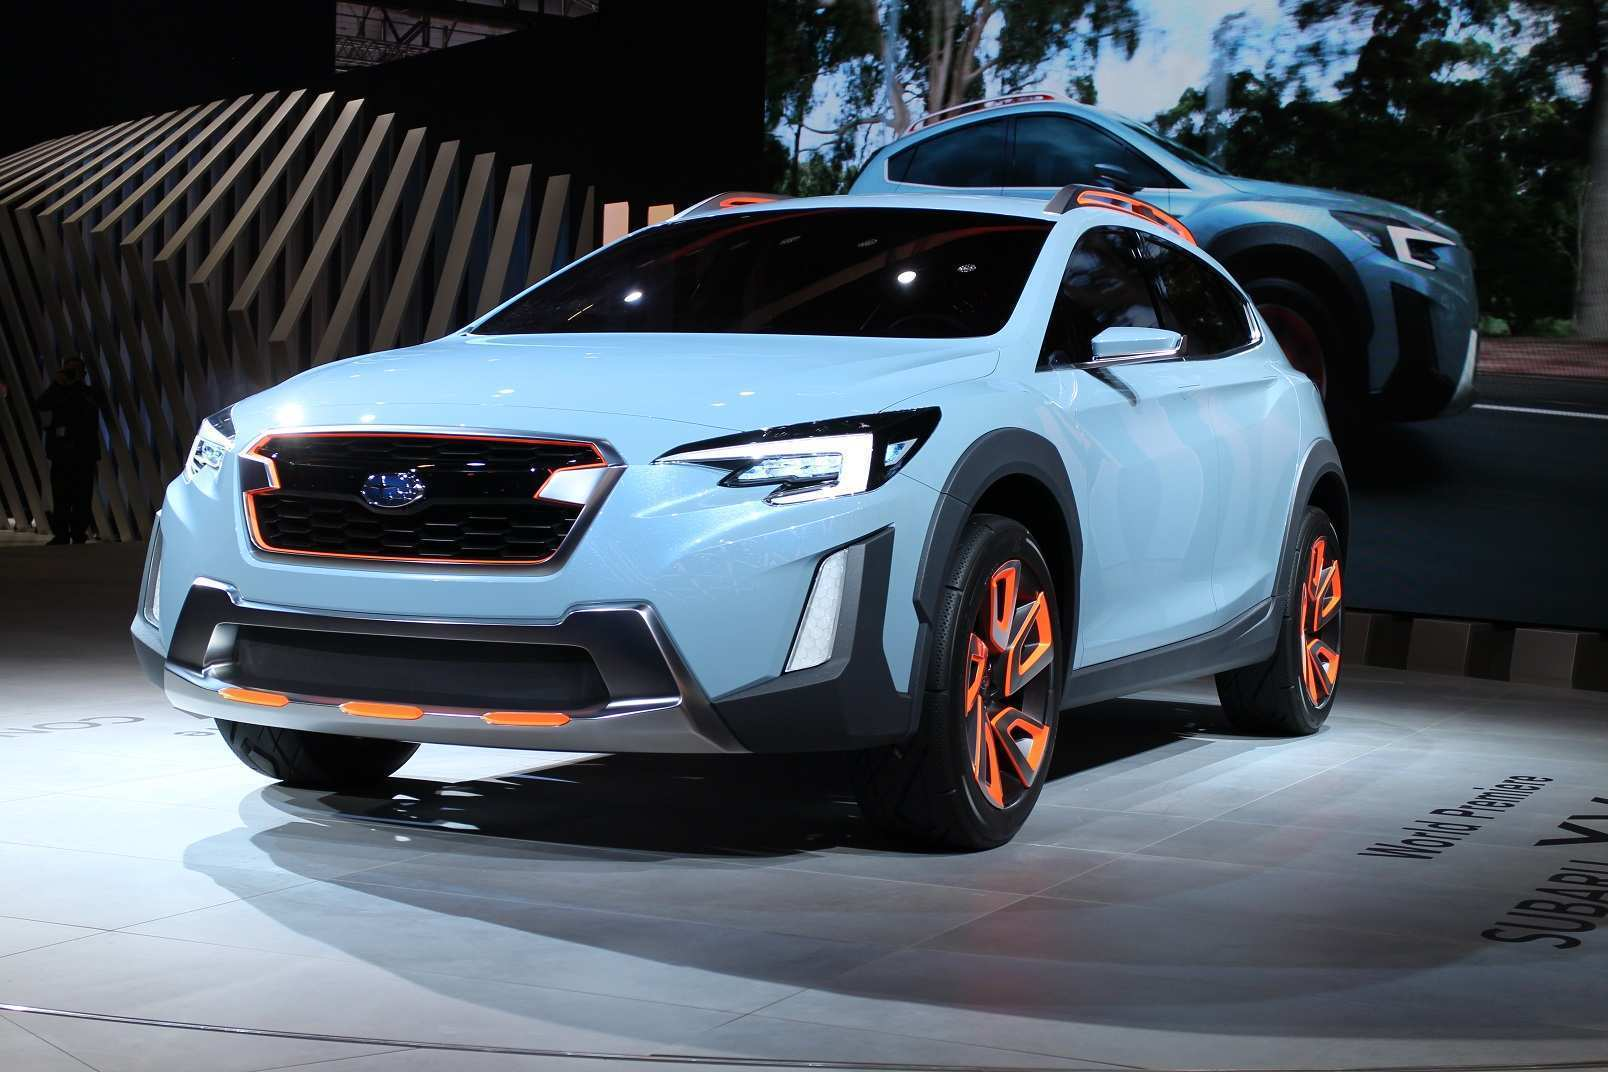 98 Best Review Subaru Xv 2020 New Review for Subaru Xv 2020